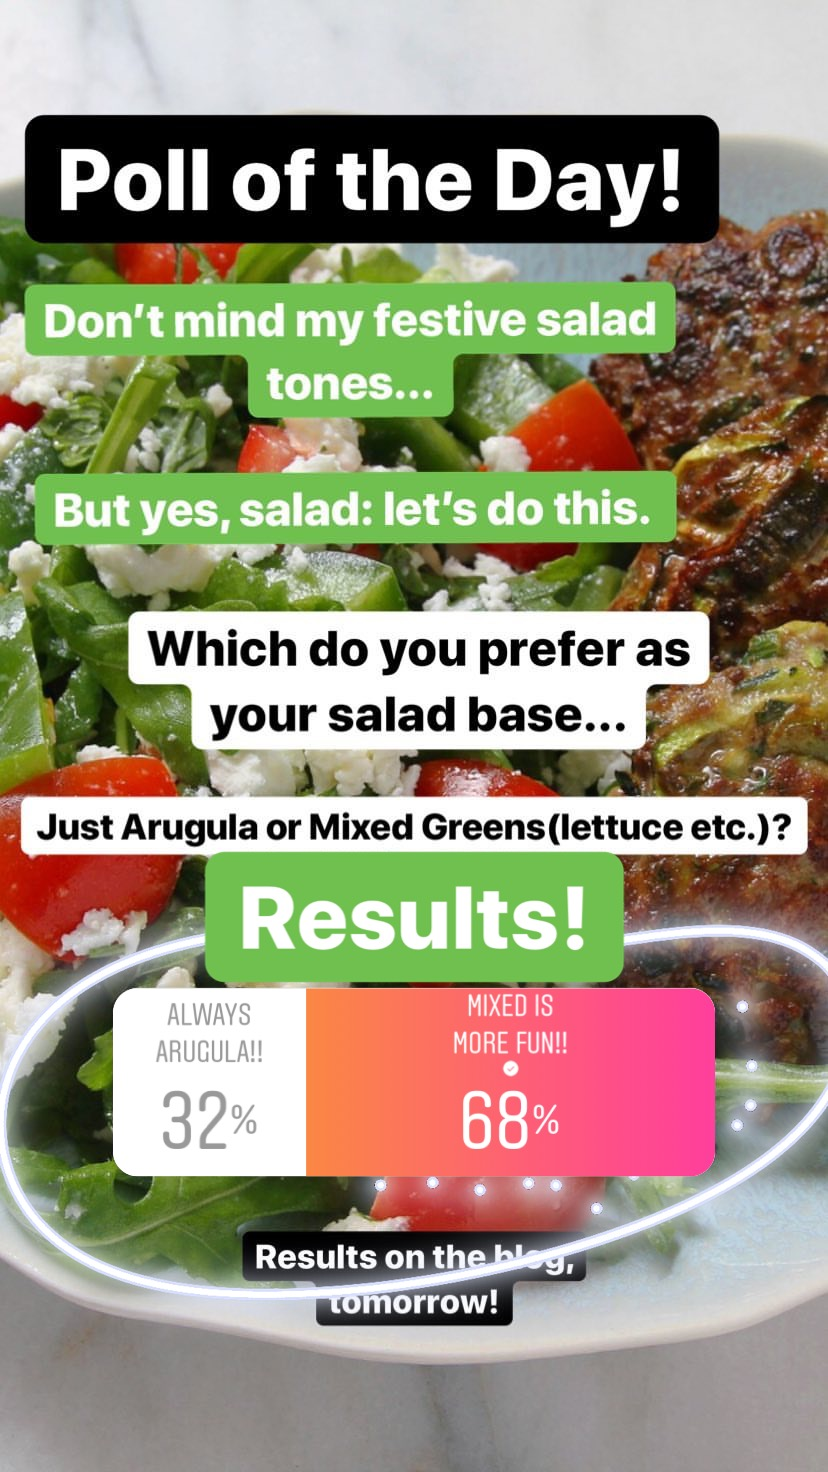 "You know, I'm surprised! As someone pretty staunchly on the ""always arugula"" side, I kind of expected more of you to join me there. However! That's clearly not the case and you guys love a good mixed greens bowl. I do like those, especially for a great Caesar salad, but I've really been enjoying the simplicity of arugula as a base lately and find it far more flavorful if you don't have much else to add to the salad. To each their own, as you say! And in this case, a mix seems to be more fun! :)"